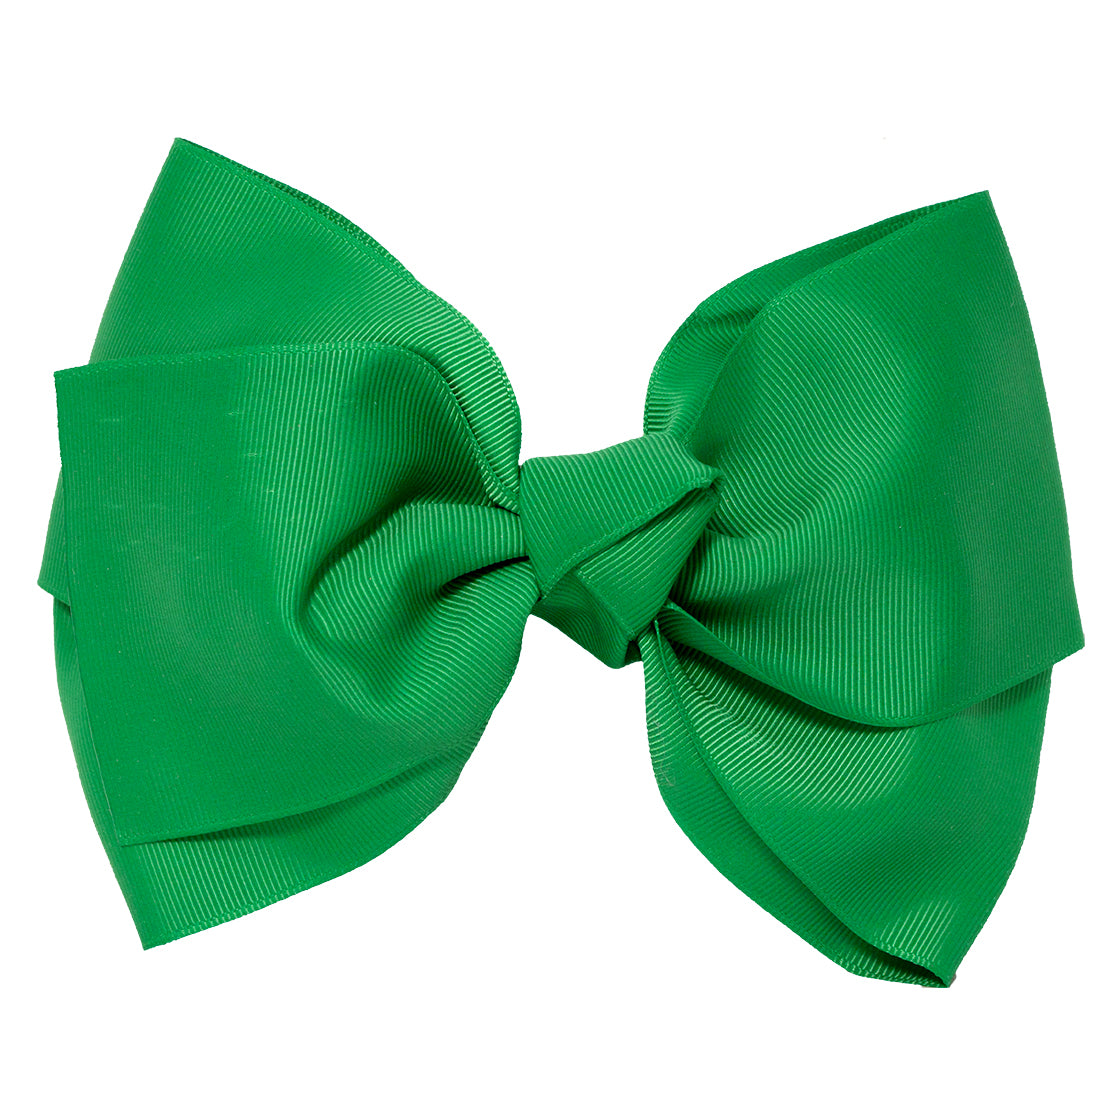 Mia Spirit Extra Large Grosgrain Bow Barrette - kelly green color - designed by #MiaKaminski of Mia Beauty